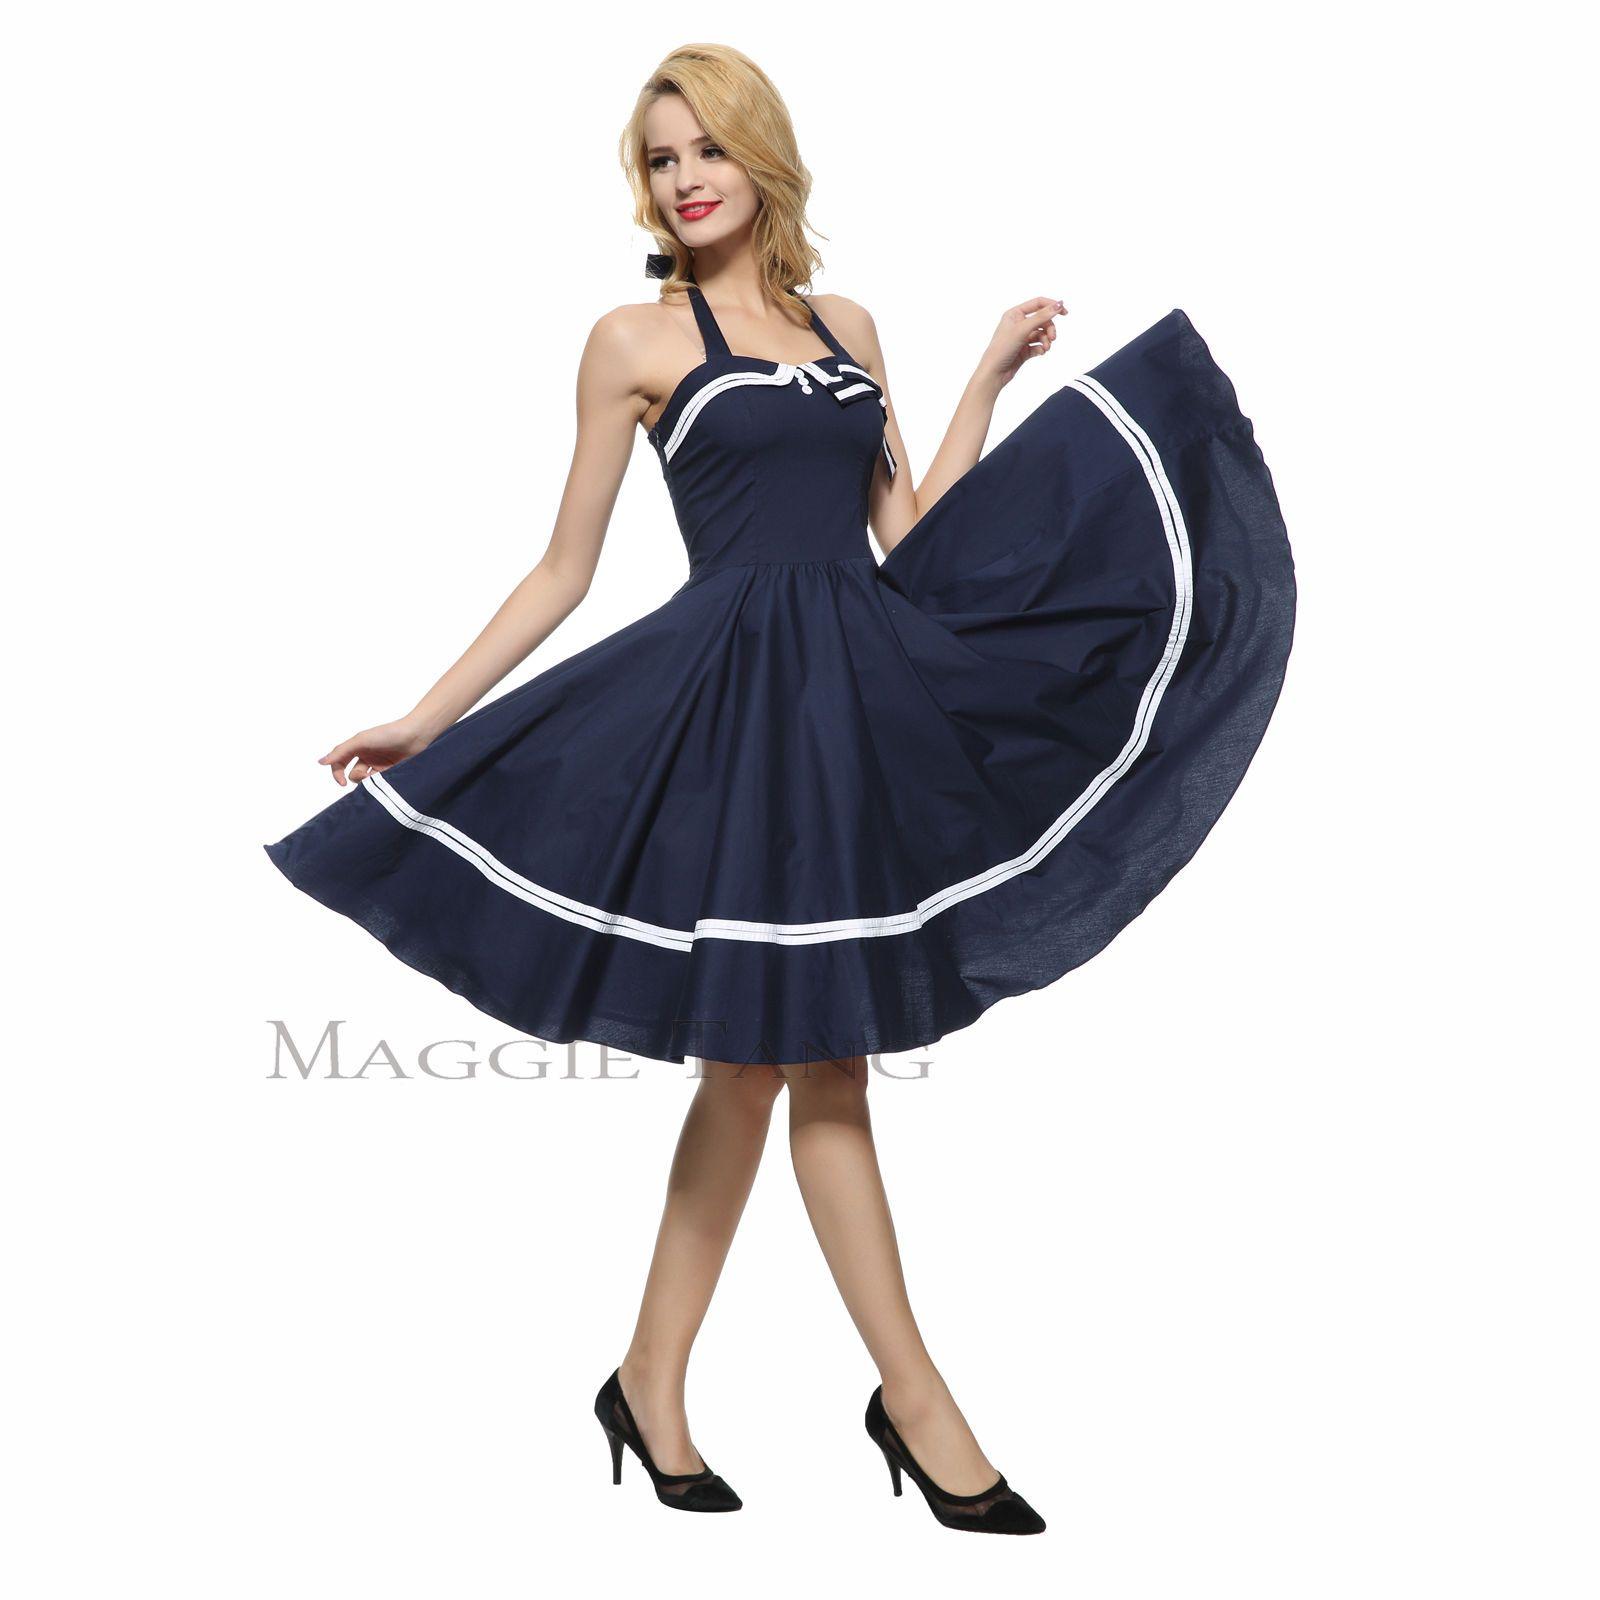 Maggie tang s s vtg pinup nautical sailor rockabilly swing party